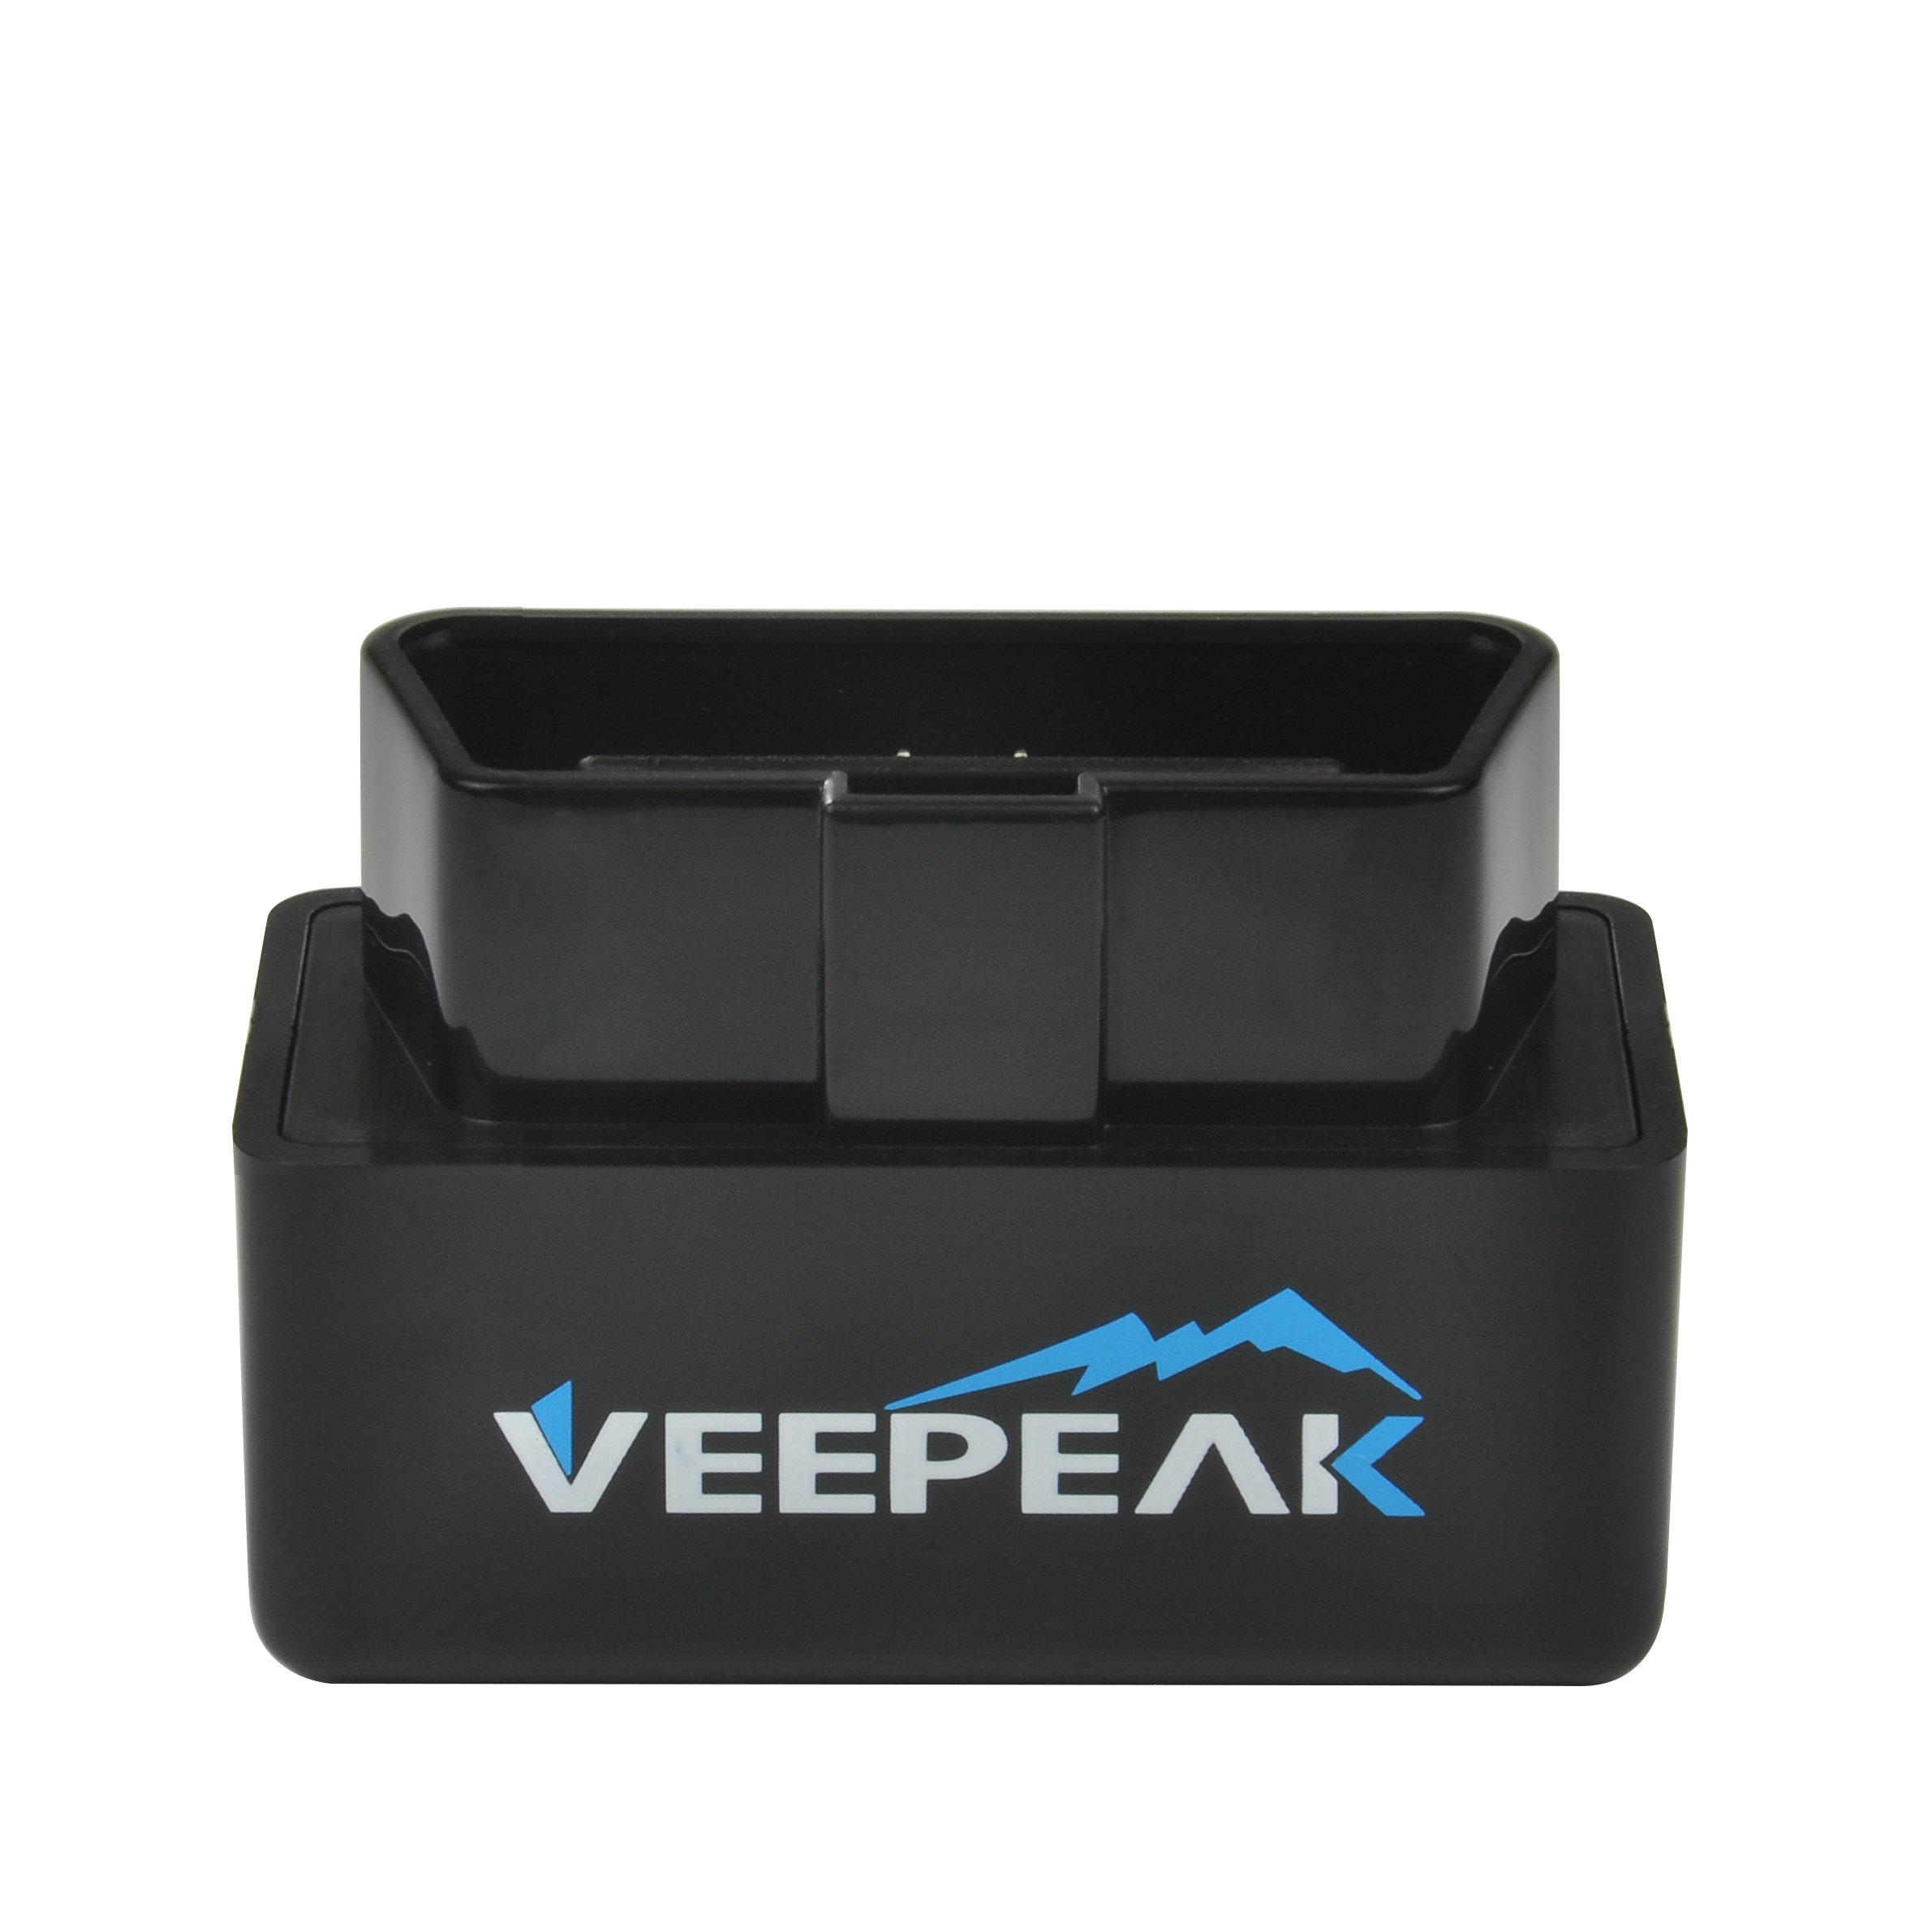 Veepeak Mini WiFi OBD2 Scanner Adapter iOS Android, Car Check Engine Light Diagnostic Code Reader Scan Tool Year 1996 Newer Vehicle in the US­